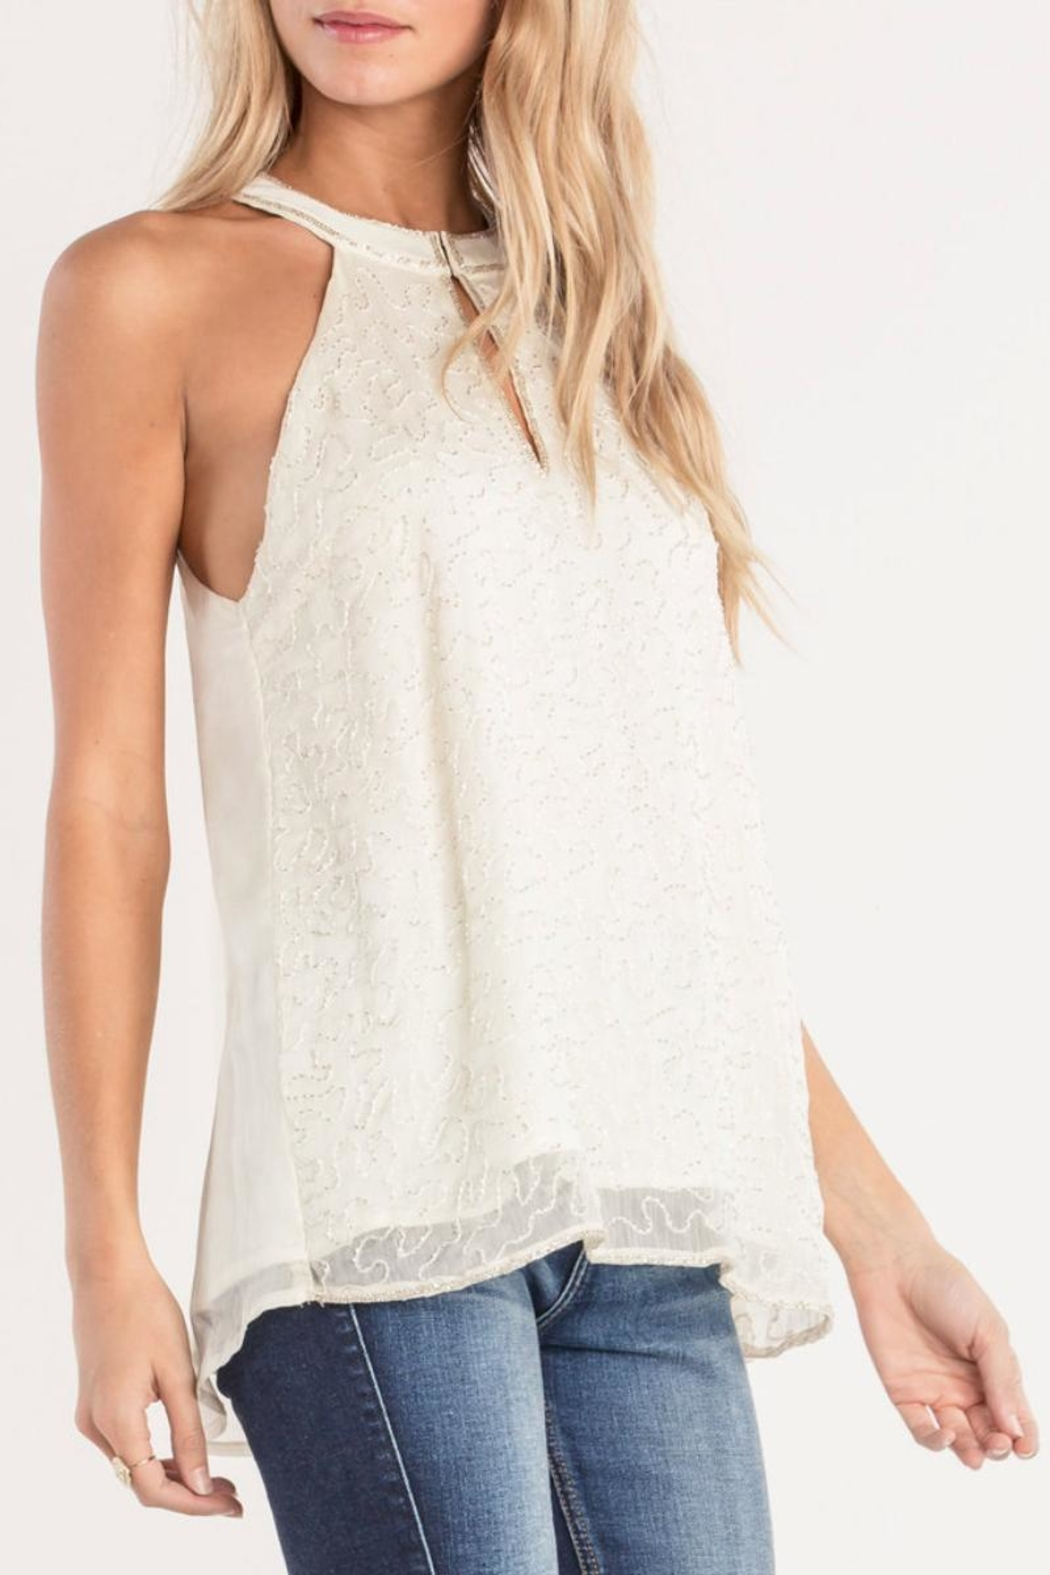 Miss Me White Beaded-Keyhole Blouse - Front Full Image